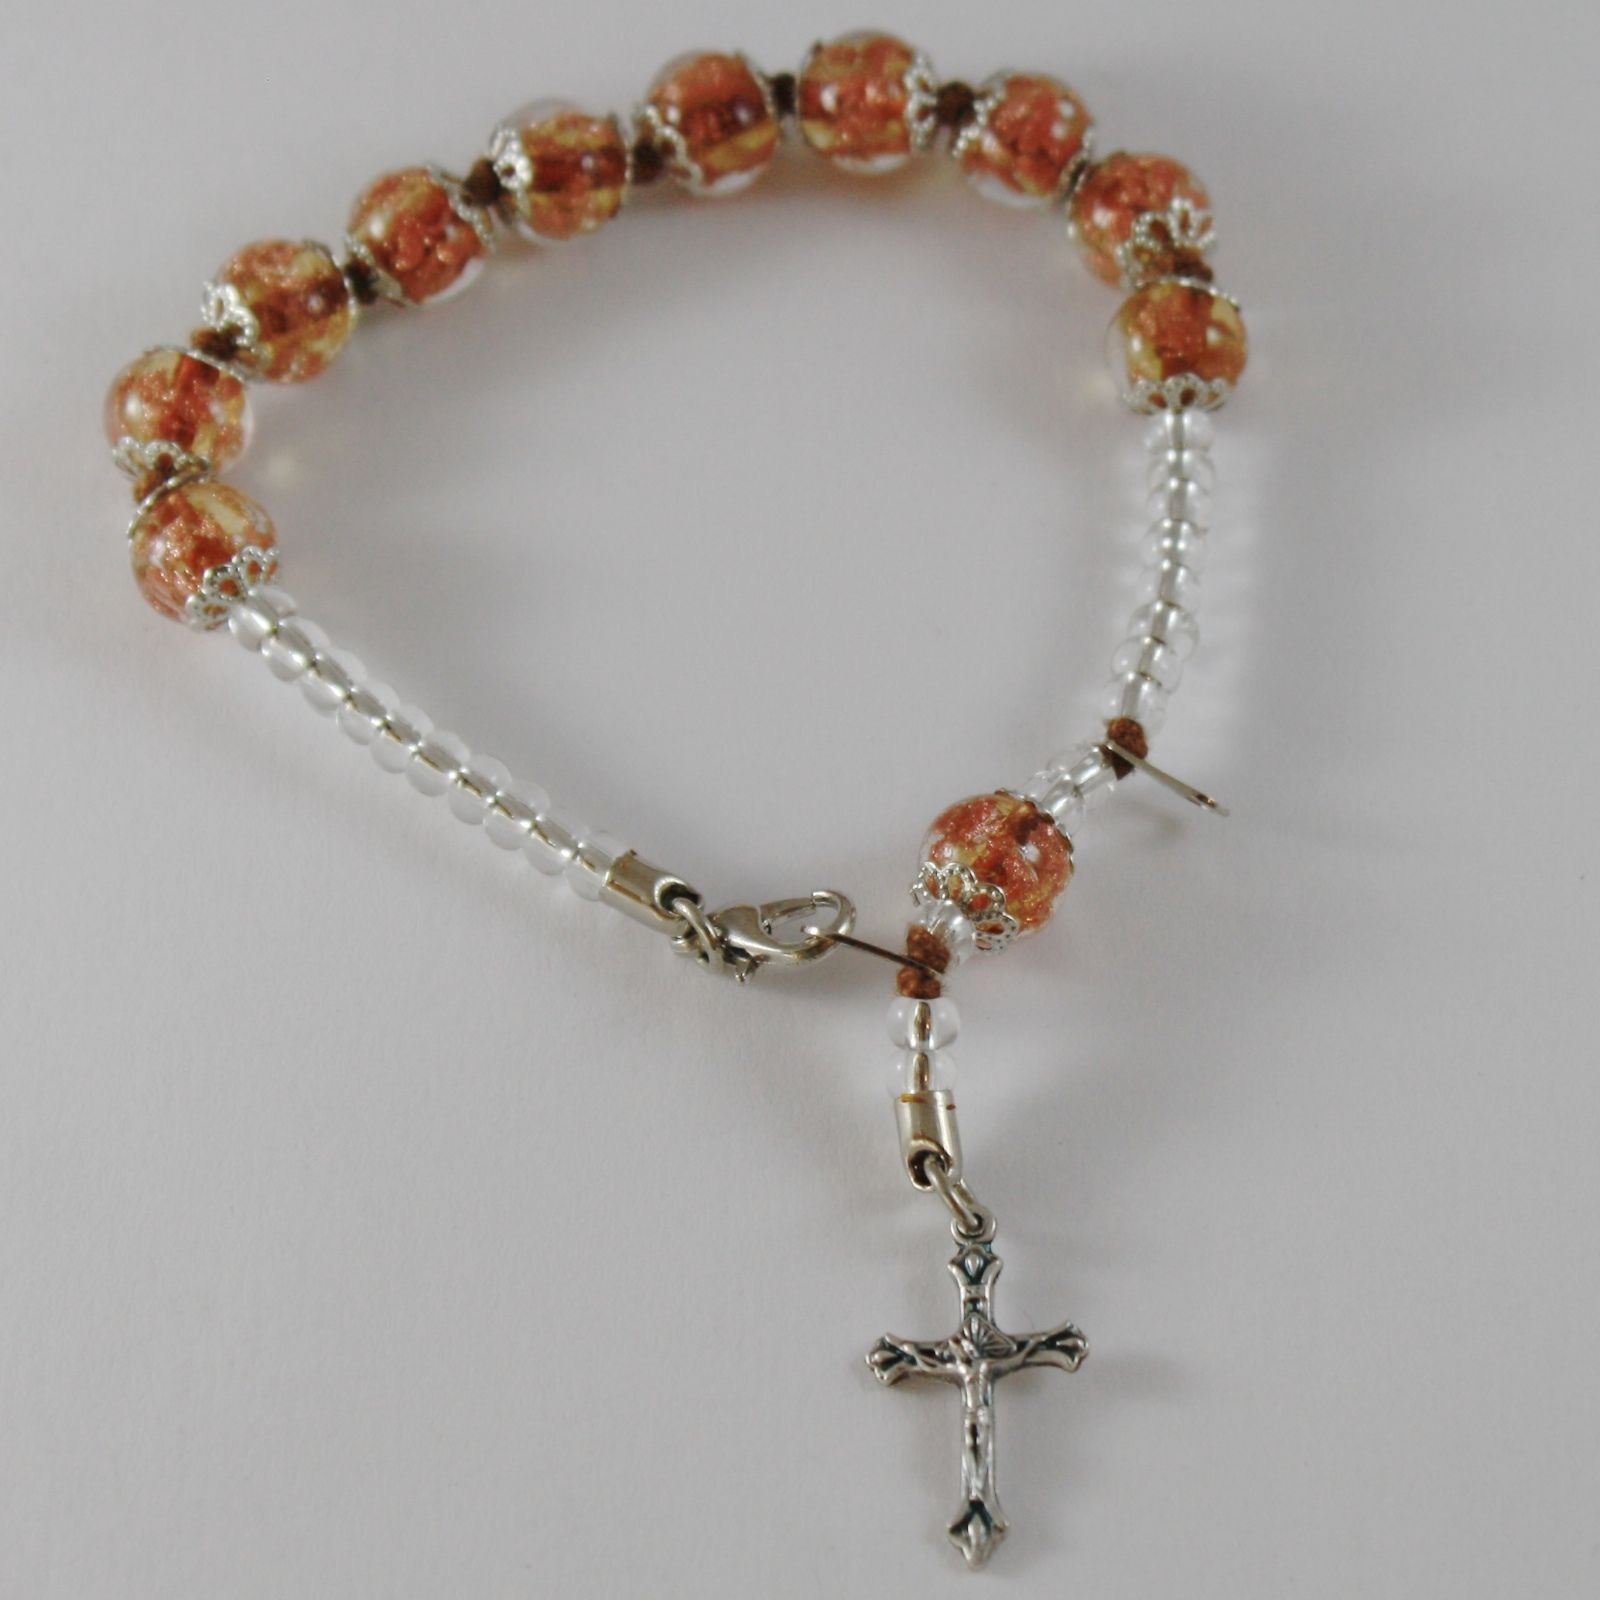 ANTICA MURRINA VENEZIA ROSARY BRACELET WITH JESUS CROSS BEIGE SPHERES BALLS BALL